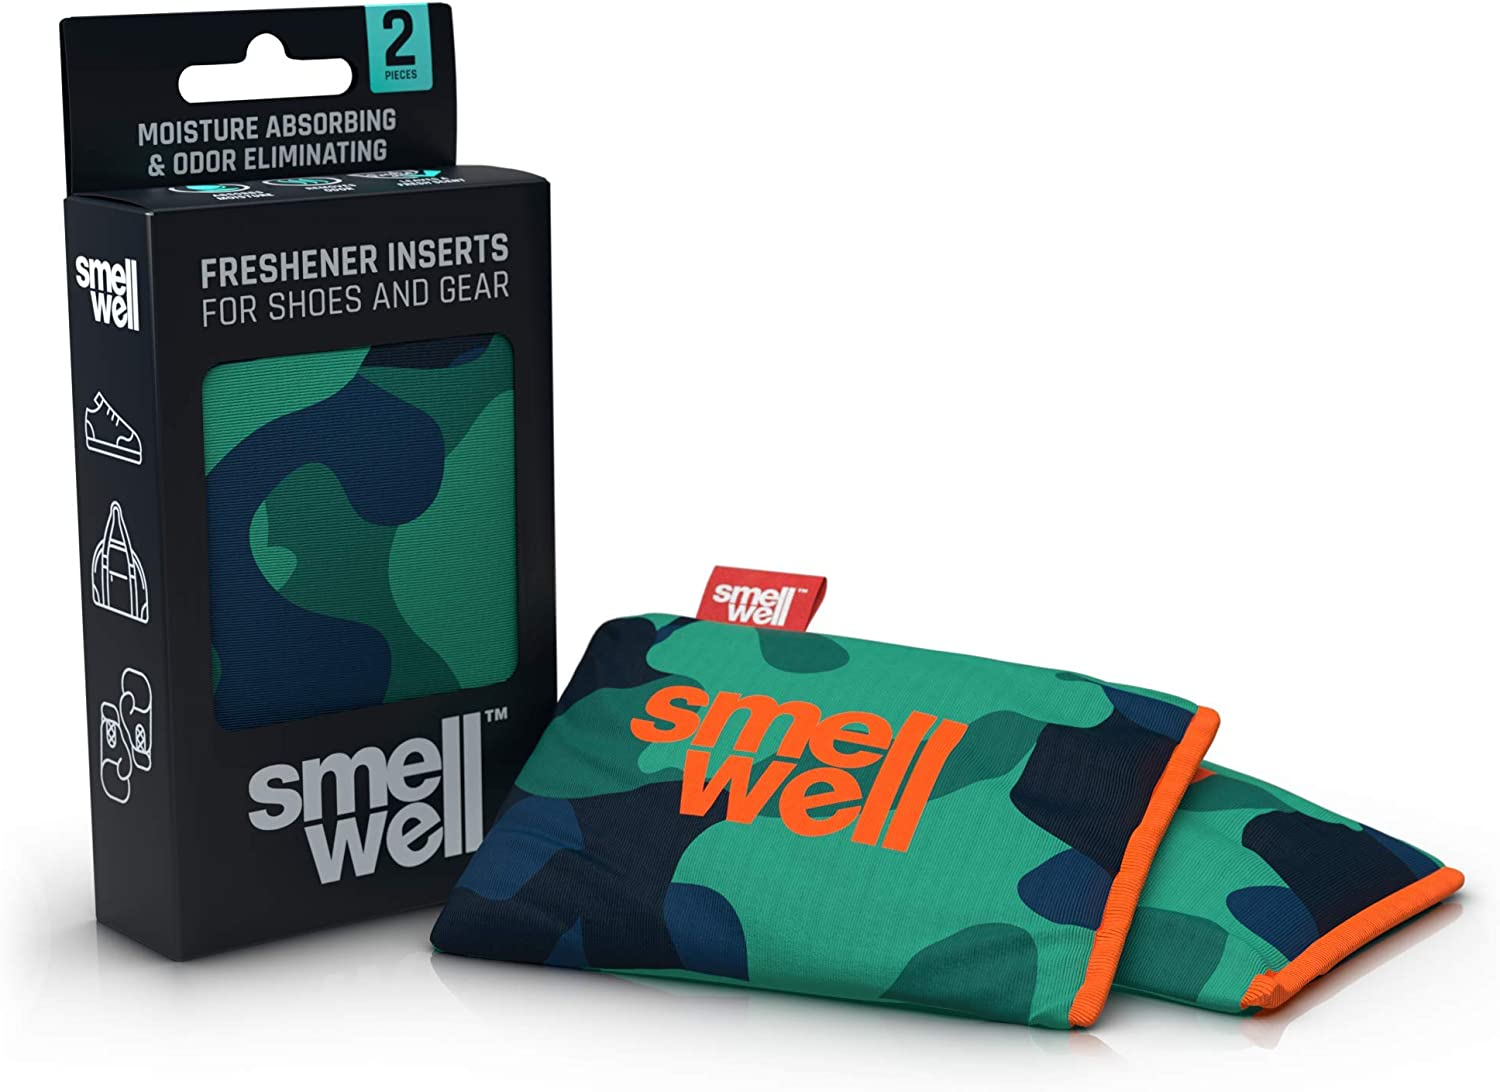 SmellWell Odor Eliminator + Shoe Deodorizer (2 Pack, 100g) Activated Bamboo Charcoal + Minerals - Air Purifying Bags - Natural Freshener Inserts for Shoes, Bags, Gloves and More